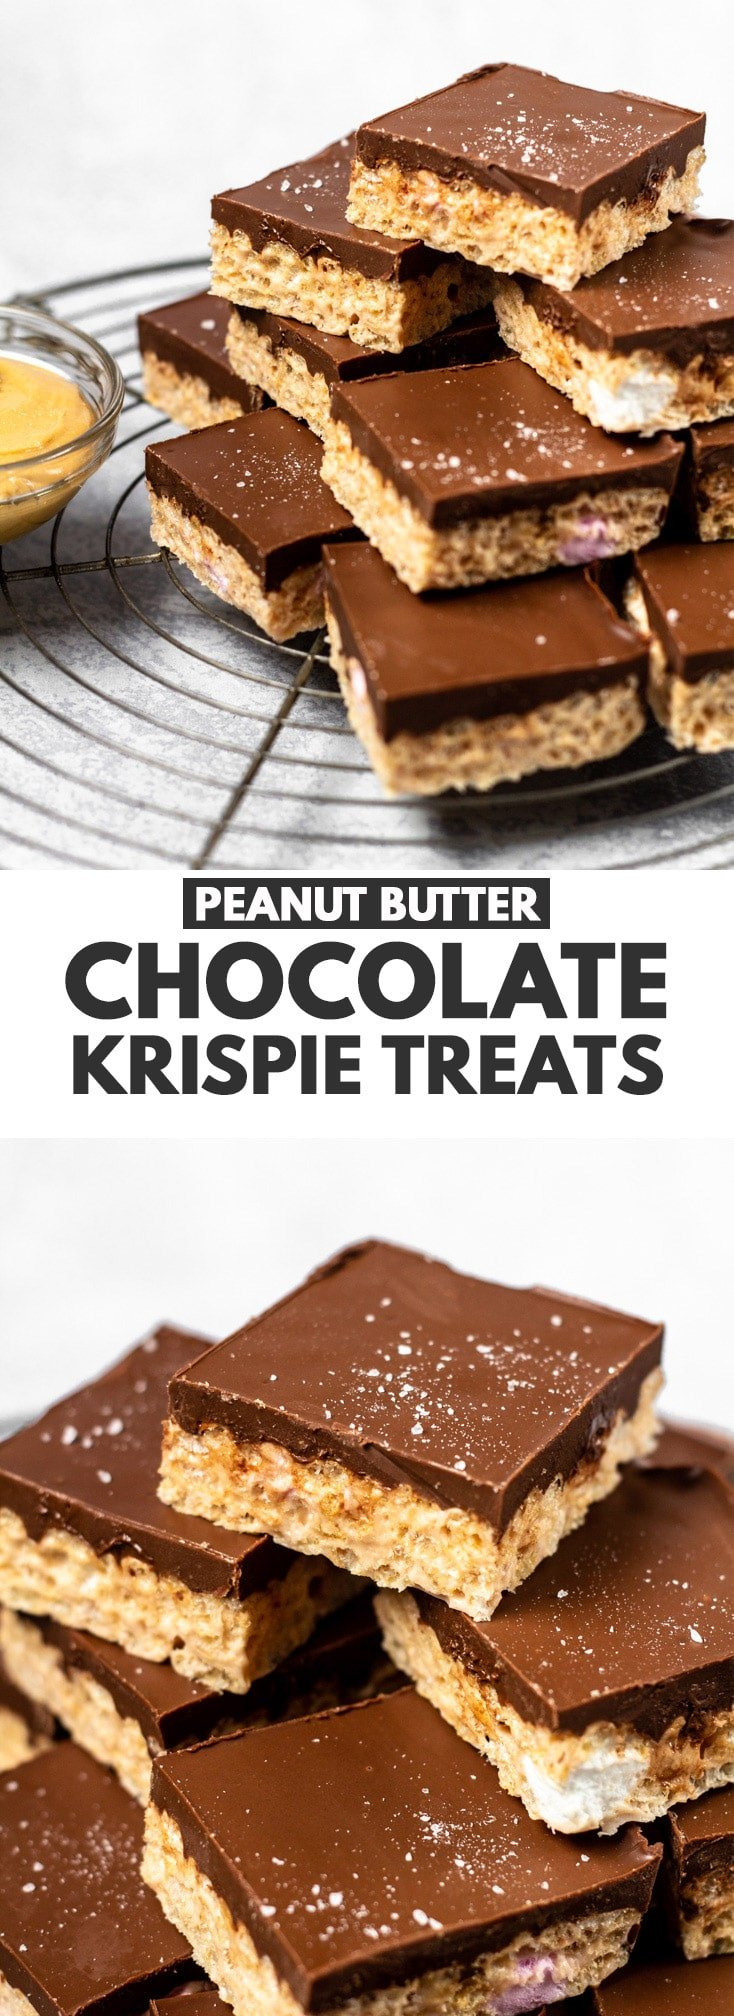 Chocolate Peanut Butter Krispie Treats